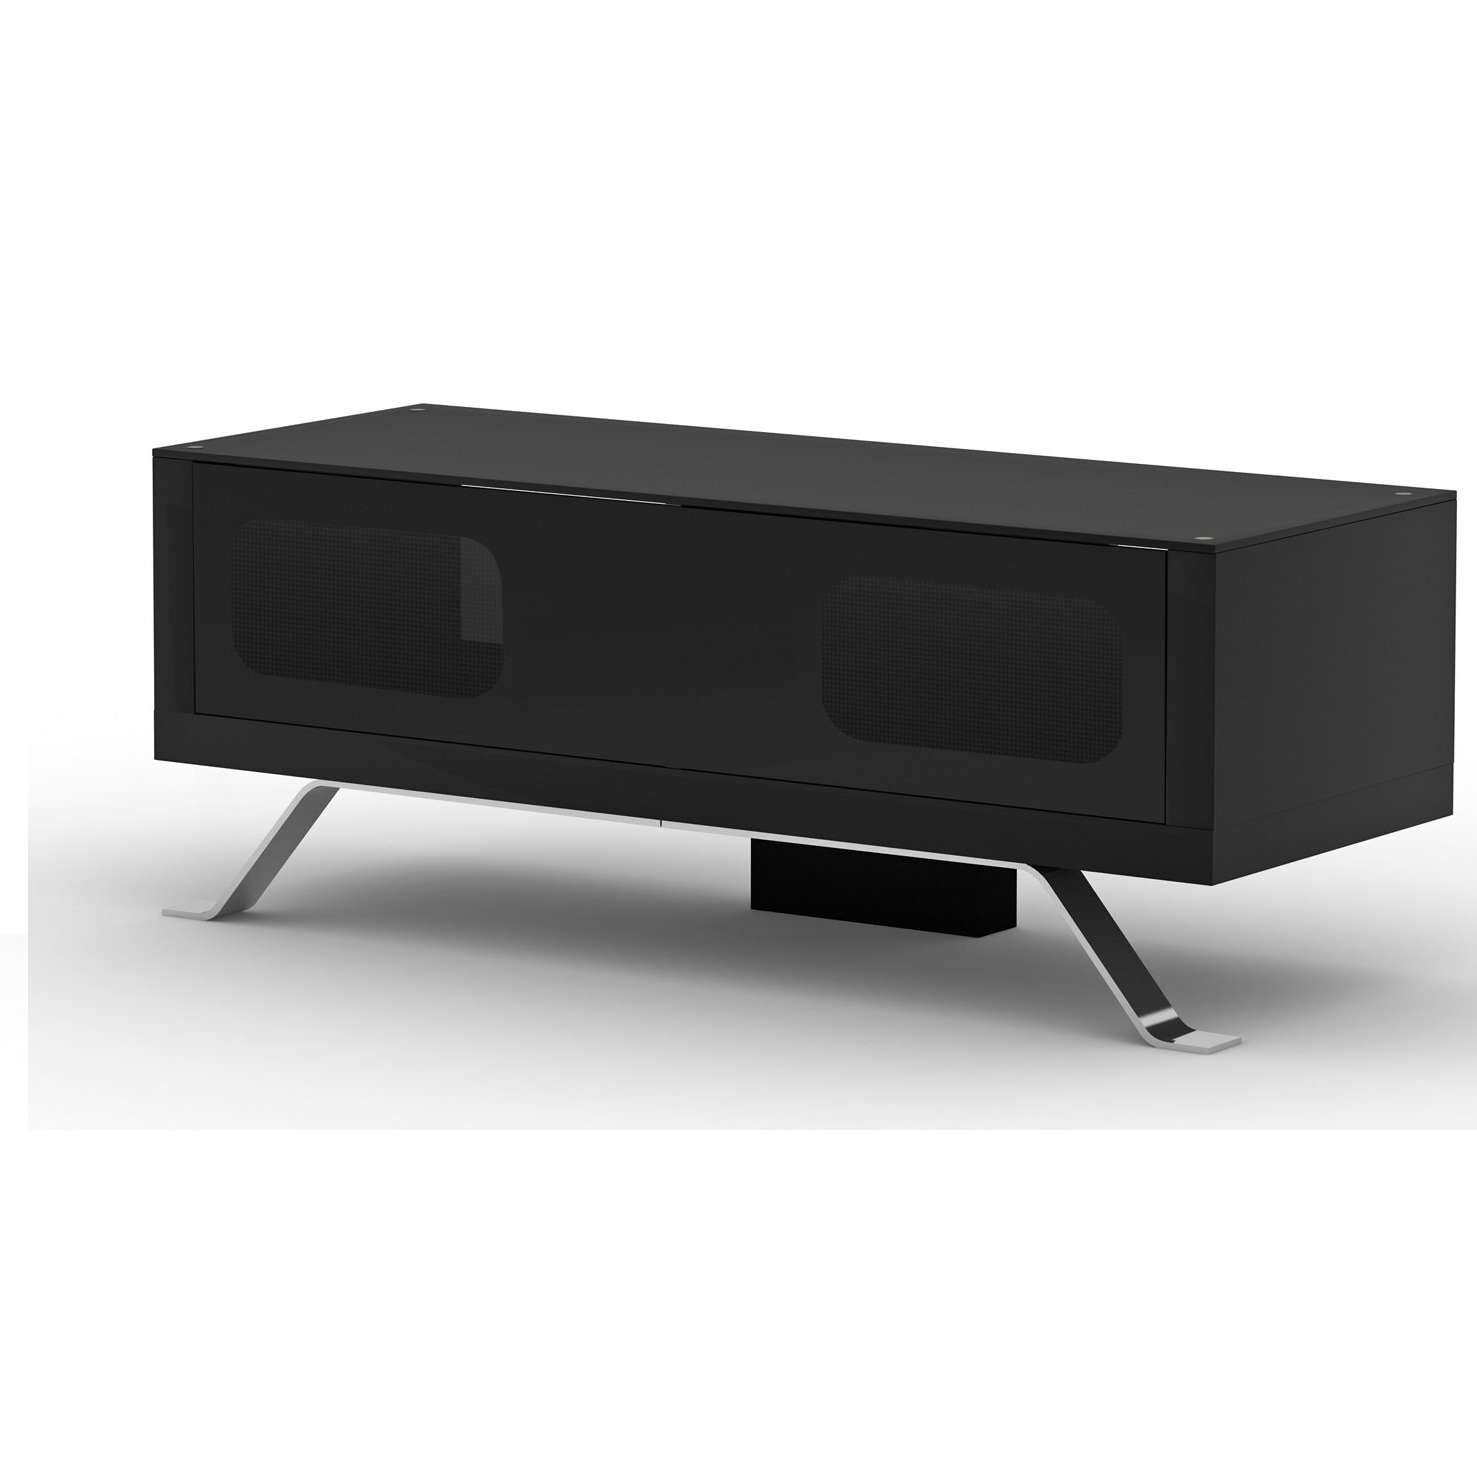 Arcadia Black Tv Cabinet With Glass Top 20518 Furniture In Inside Black Tv Stands (View 1 of 20)